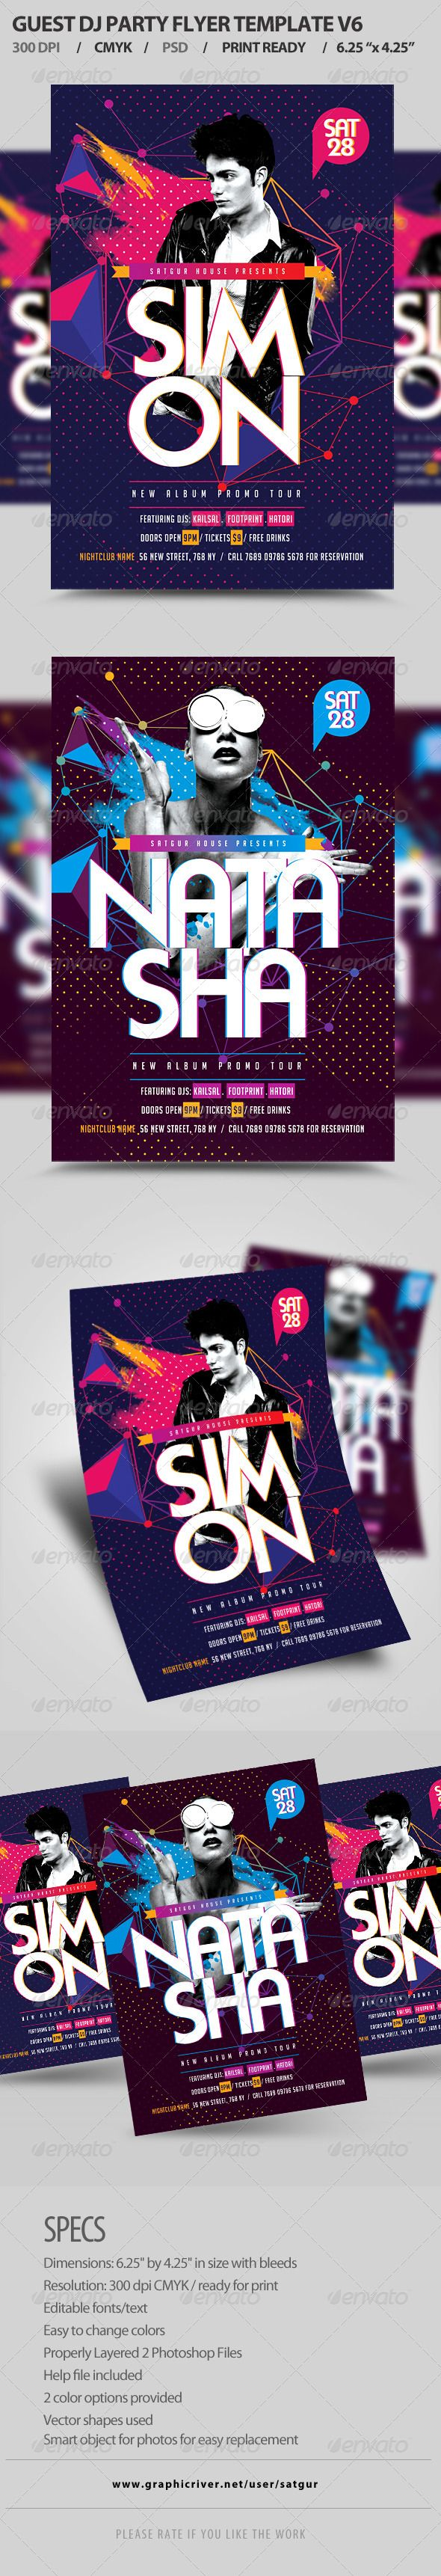 Guest DJ Party Flyer Template PSD V6 — Photoshop PSD #nightclub #college • Available here → https://graphicriver.net/item/guest-dj-party-flyer-template-psd-v6/8415564?ref=pxcr